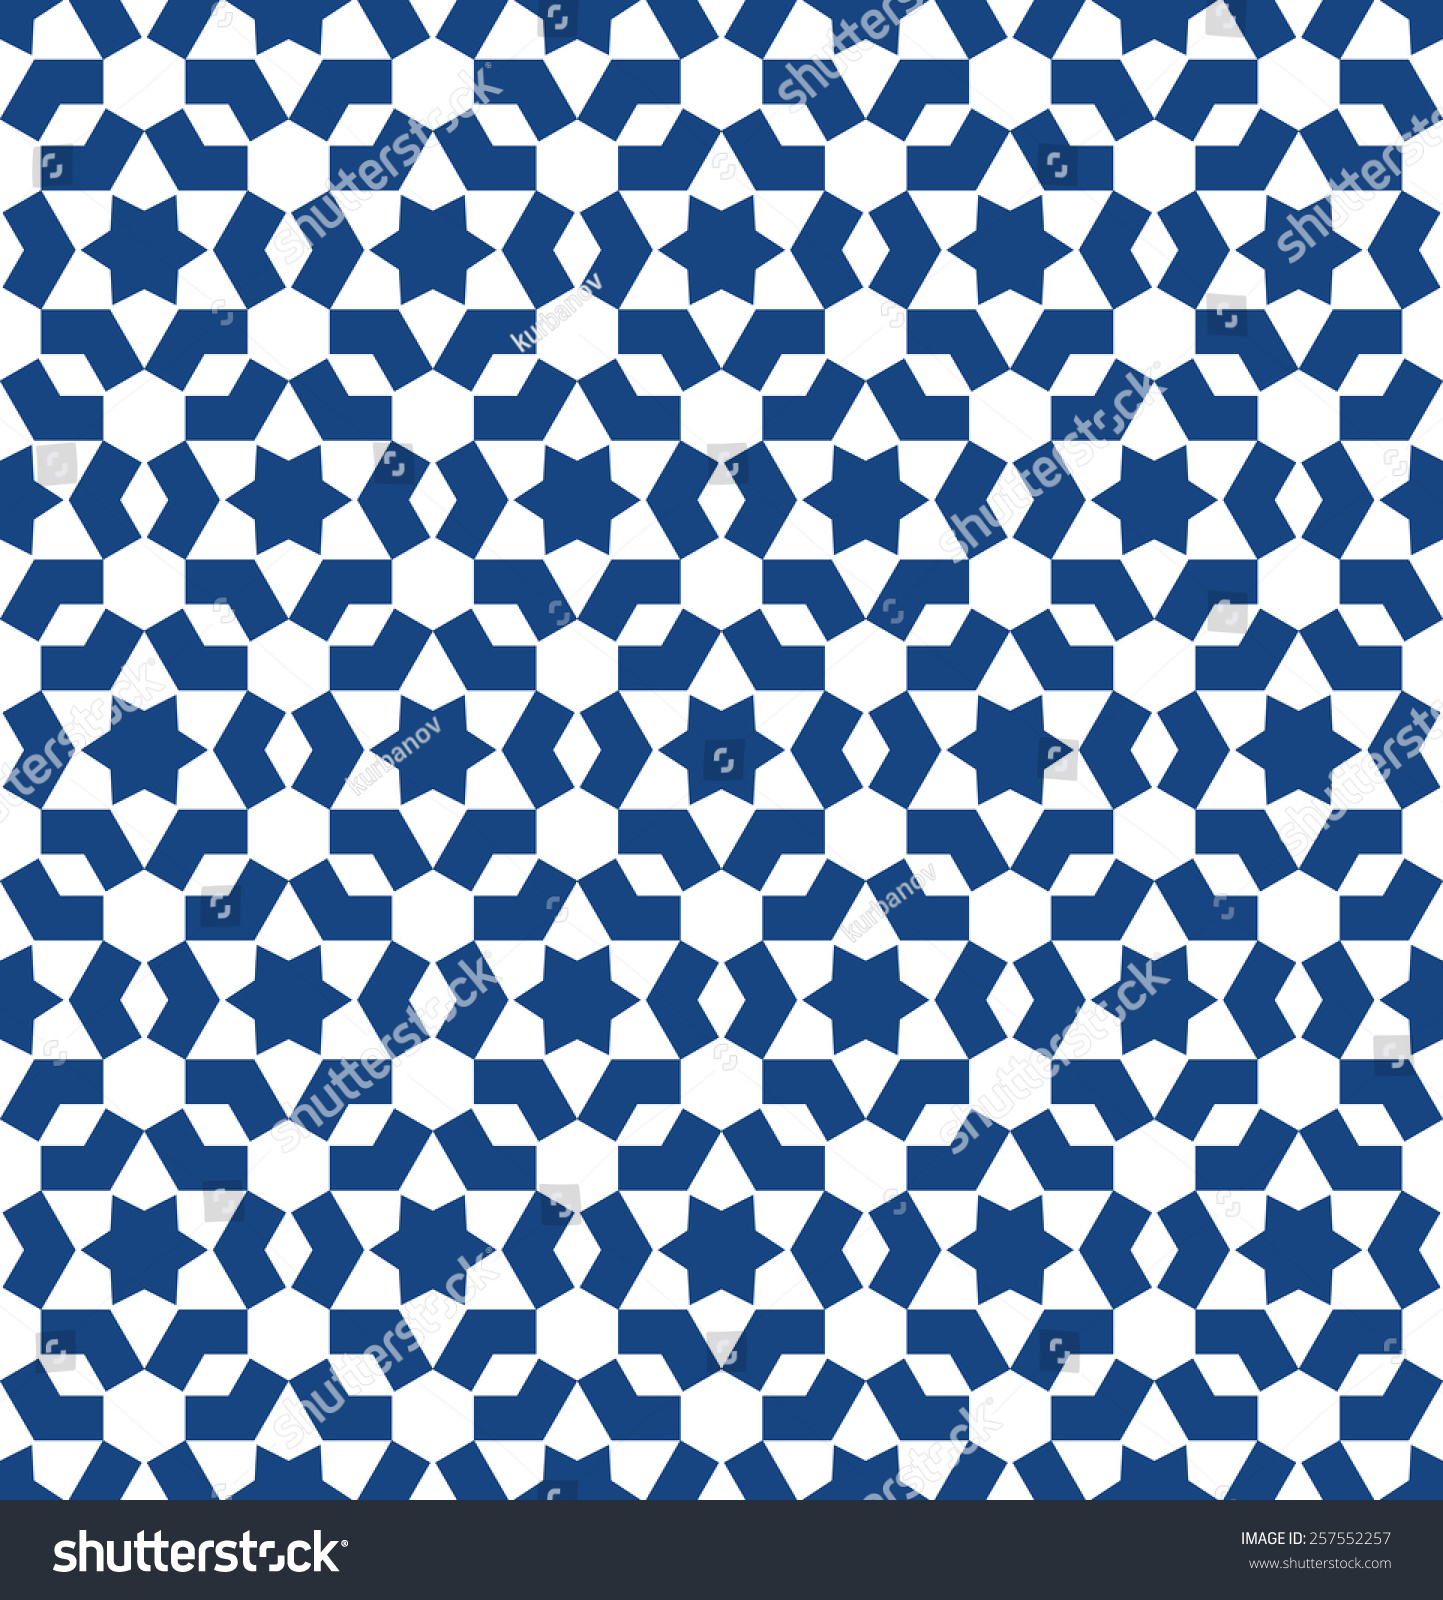 Moroccan Style Mosaic Ornament Seamless Mosaic Stock Vector ...